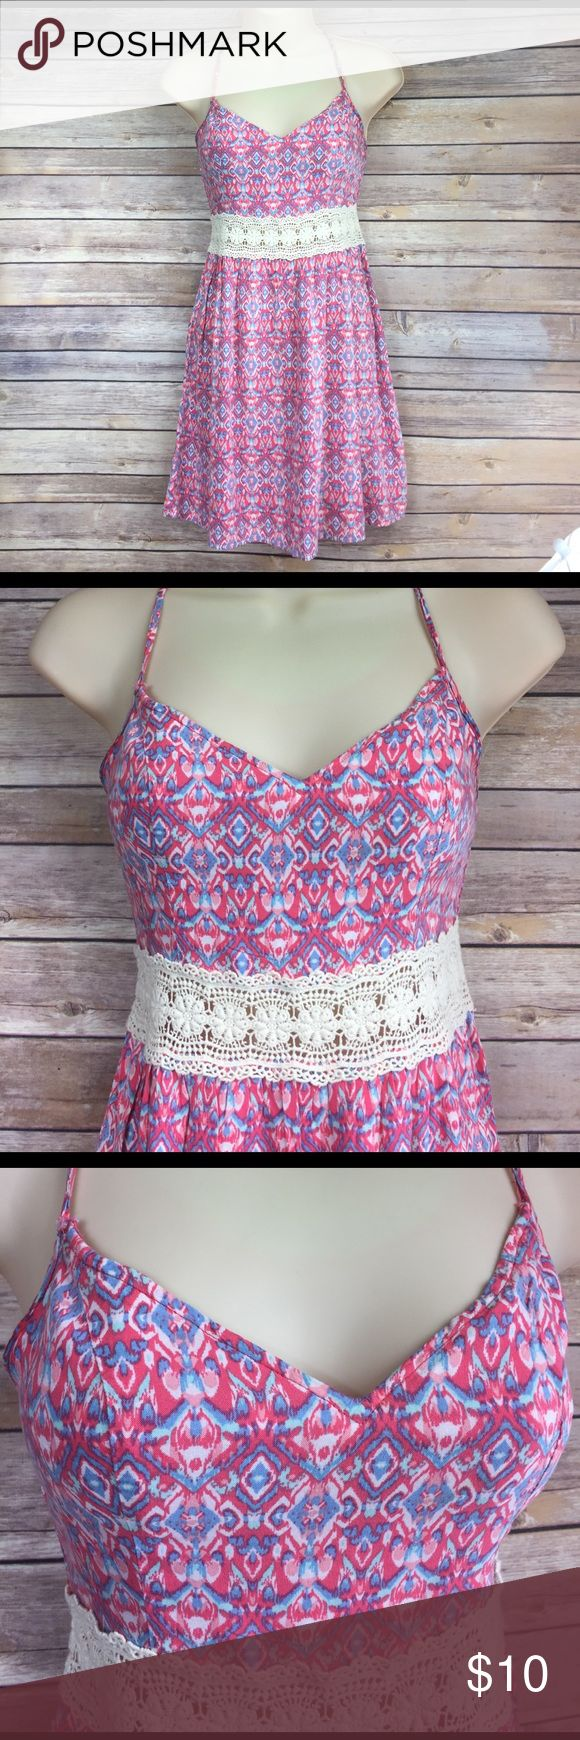 """🔵Size XS Hollister dress Has pretty laced """"belt"""" across the midsection.  Straps are criss-crossed on the back.  🛍 bundle and save!  Buy 2 or more items, receive a 25% discount automatically 🛍 Hollister Dresses"""